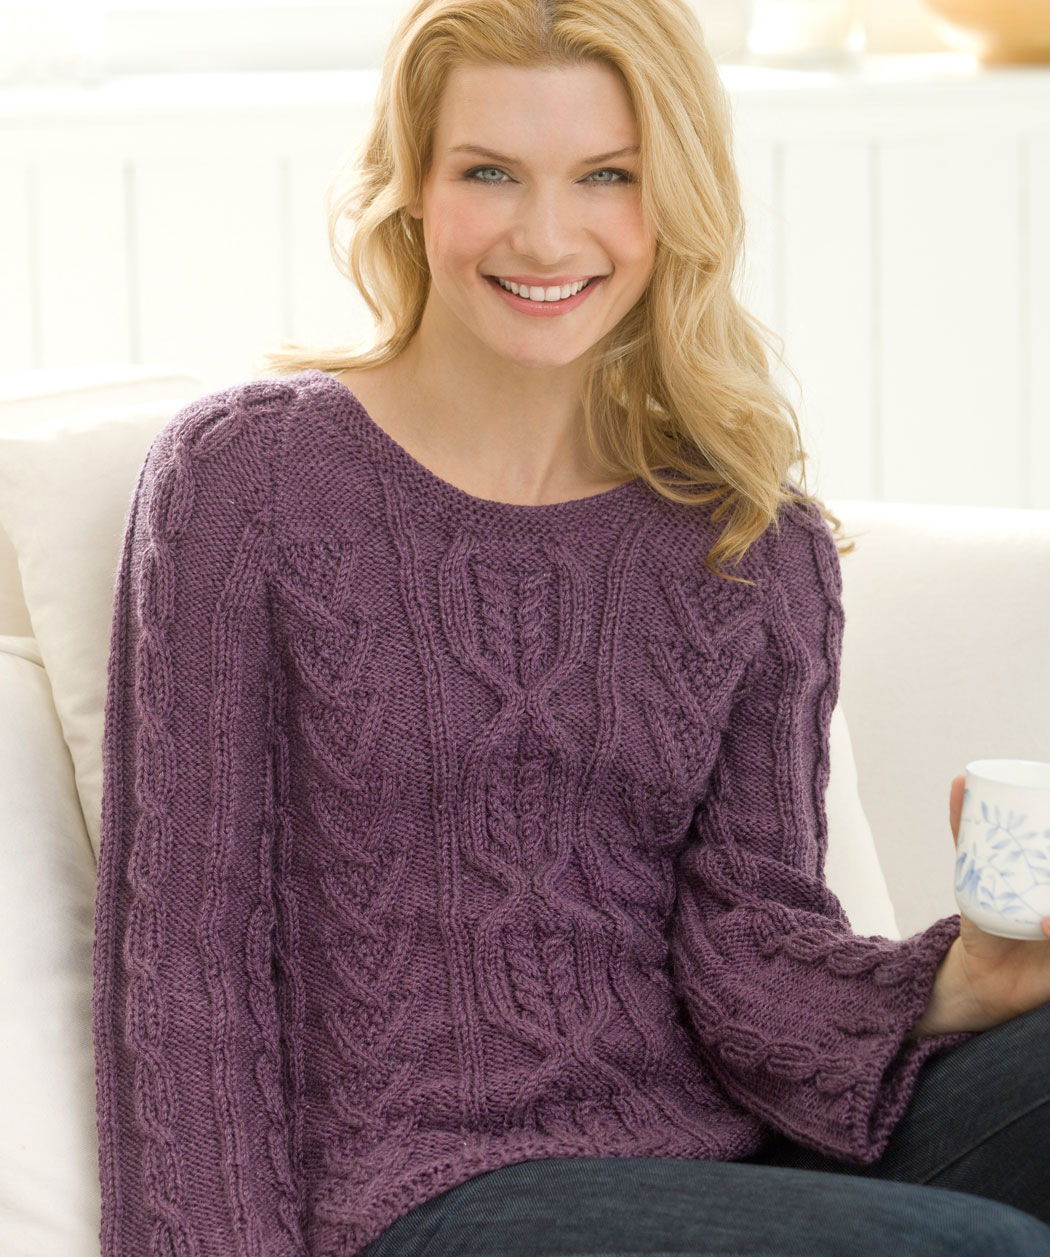 Free Pullover Knitting Patterns : Cable Knit Sweater Patterns A Knitting Blog